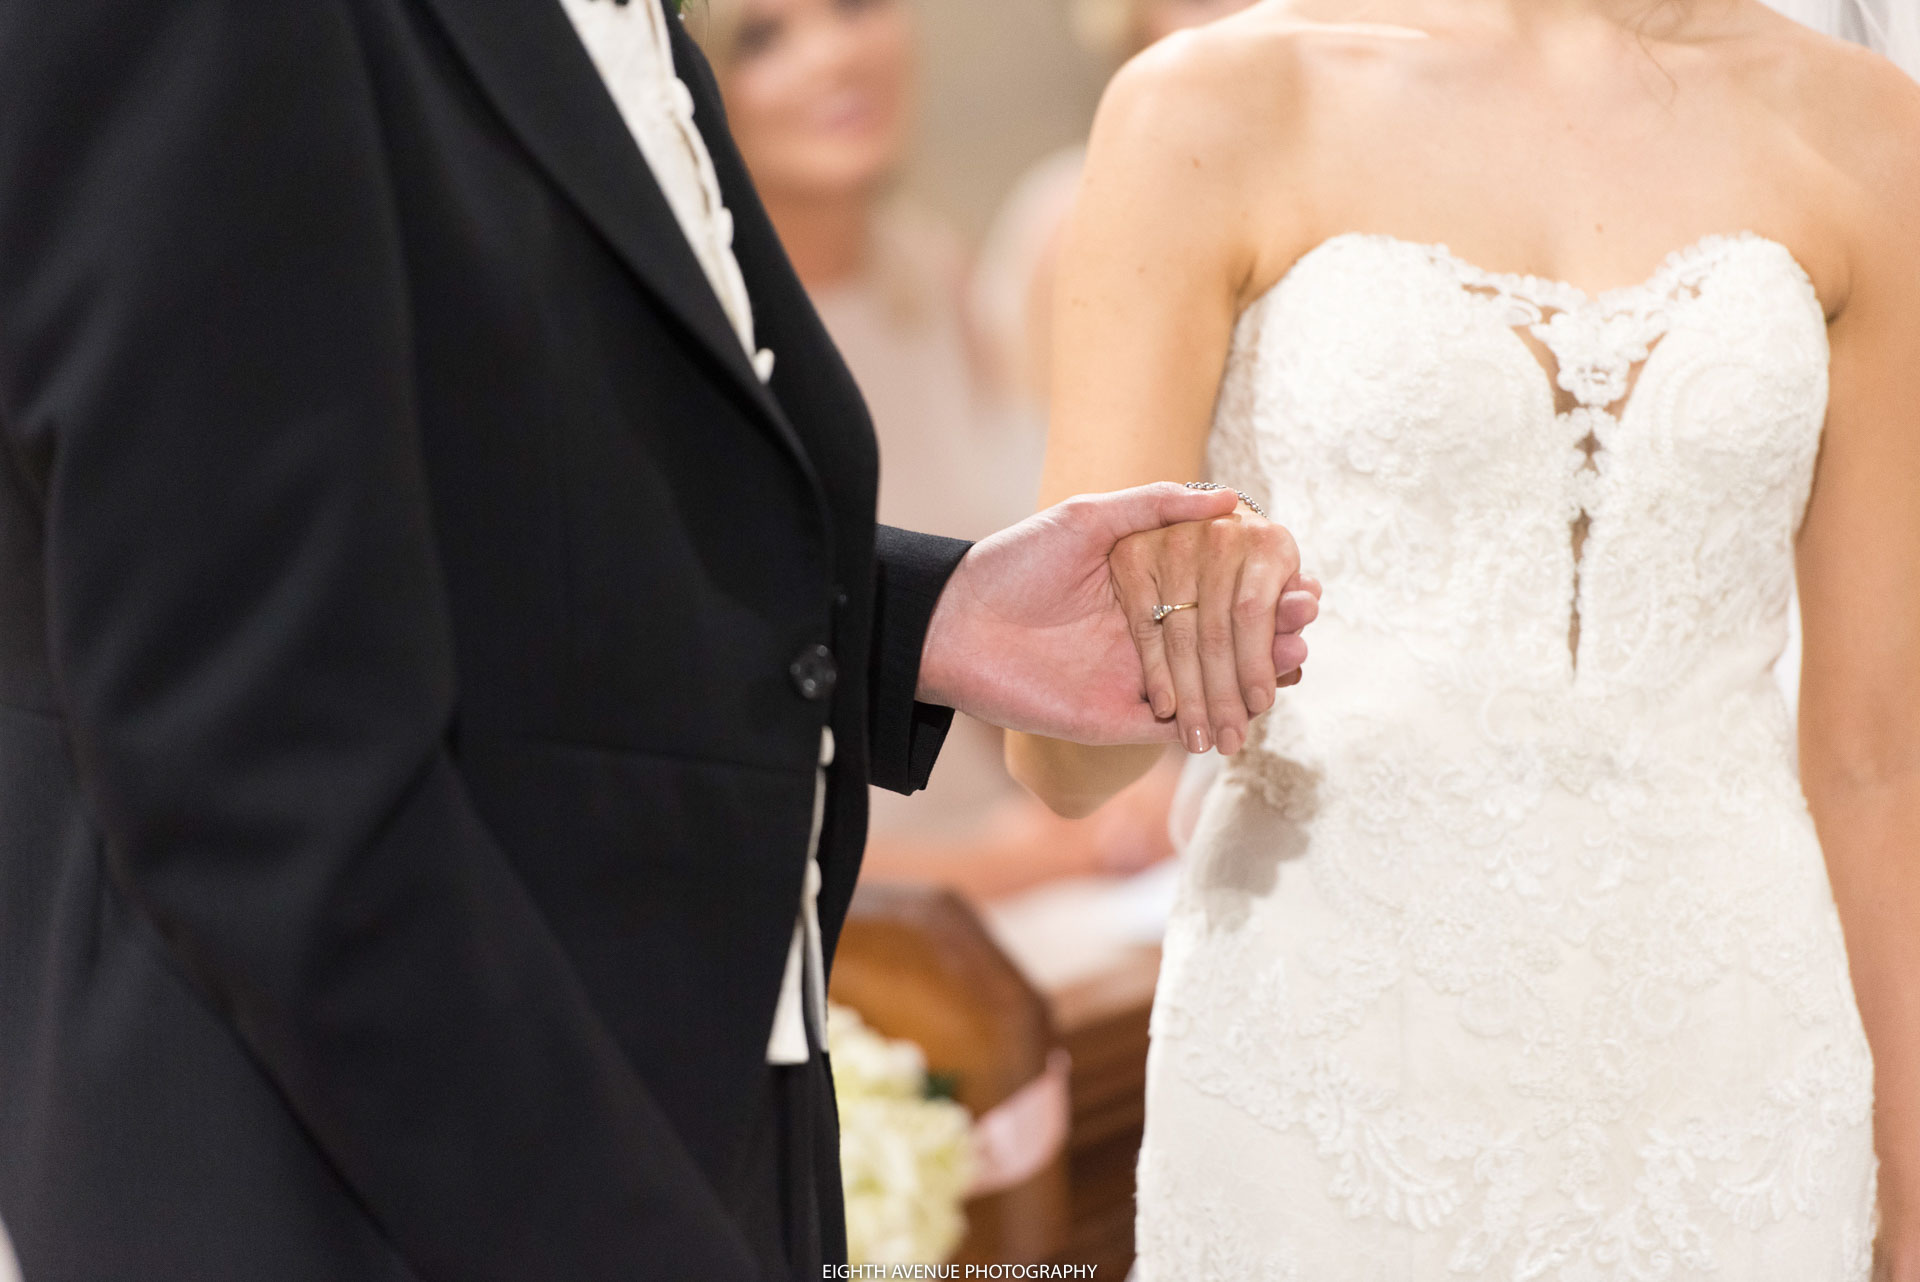 Bride and groom holding hands at wedding